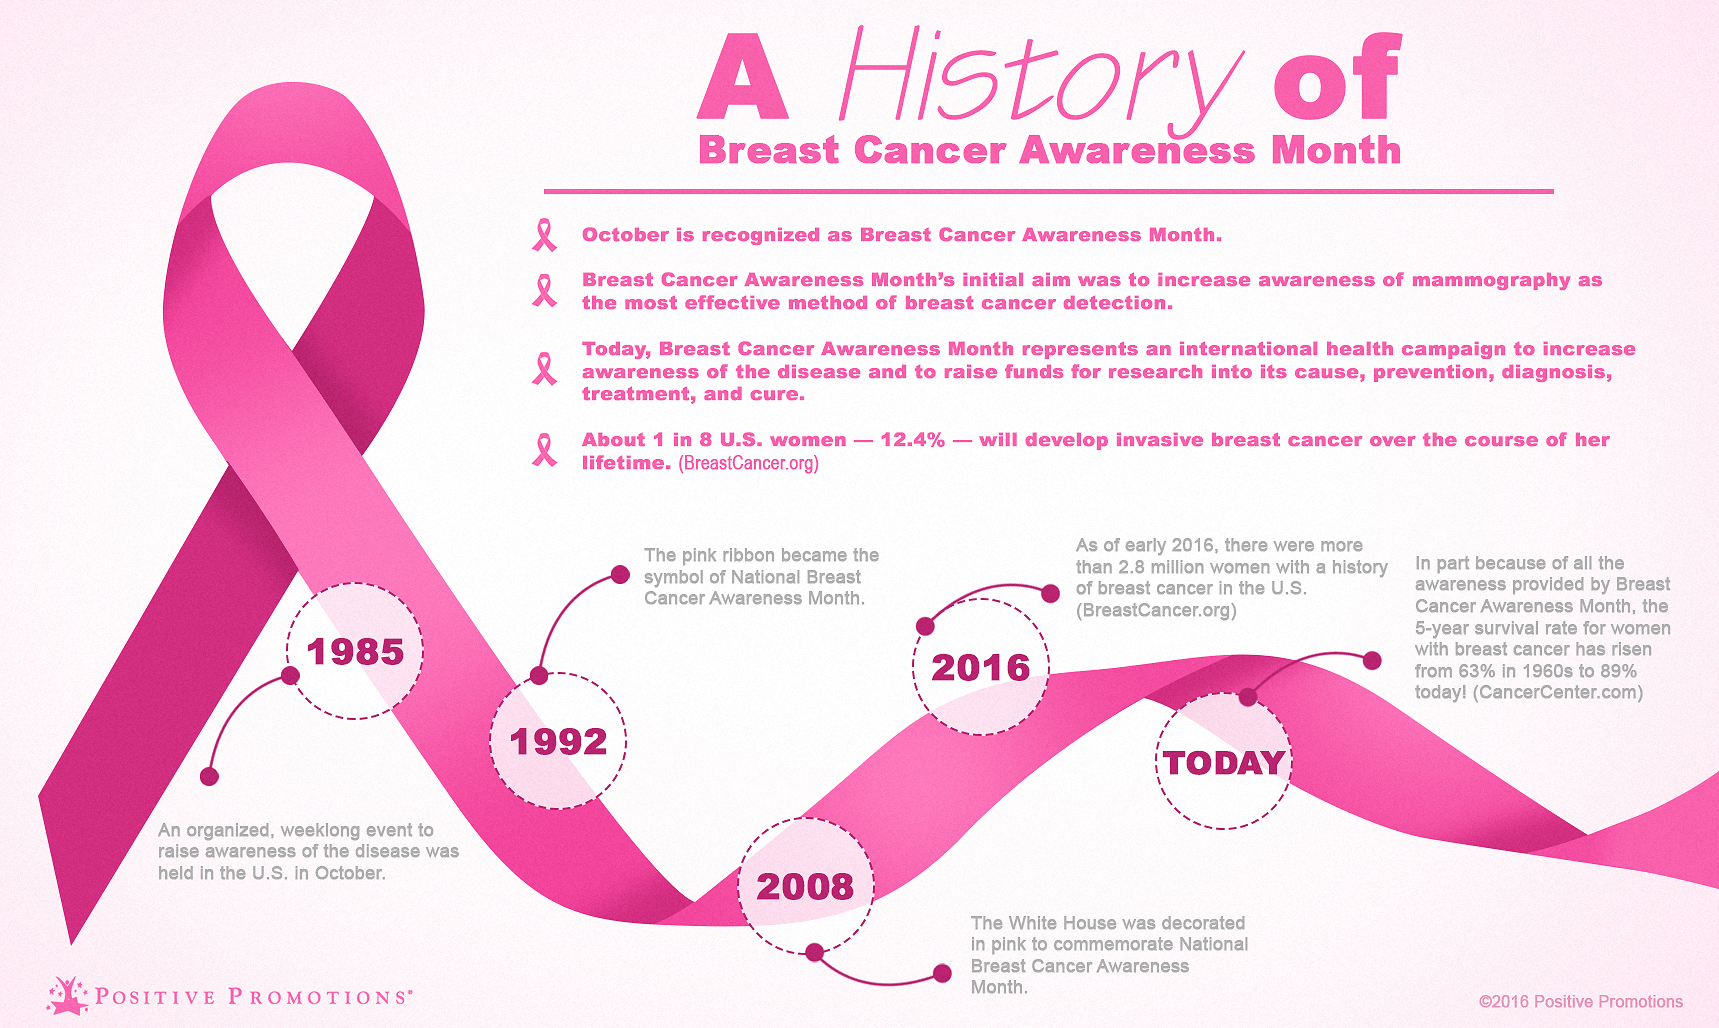 Photo credit: http://blog.positivepromotions.com/2016/10/05/a-history-of-breast-cancer-awareness-month-infographic/